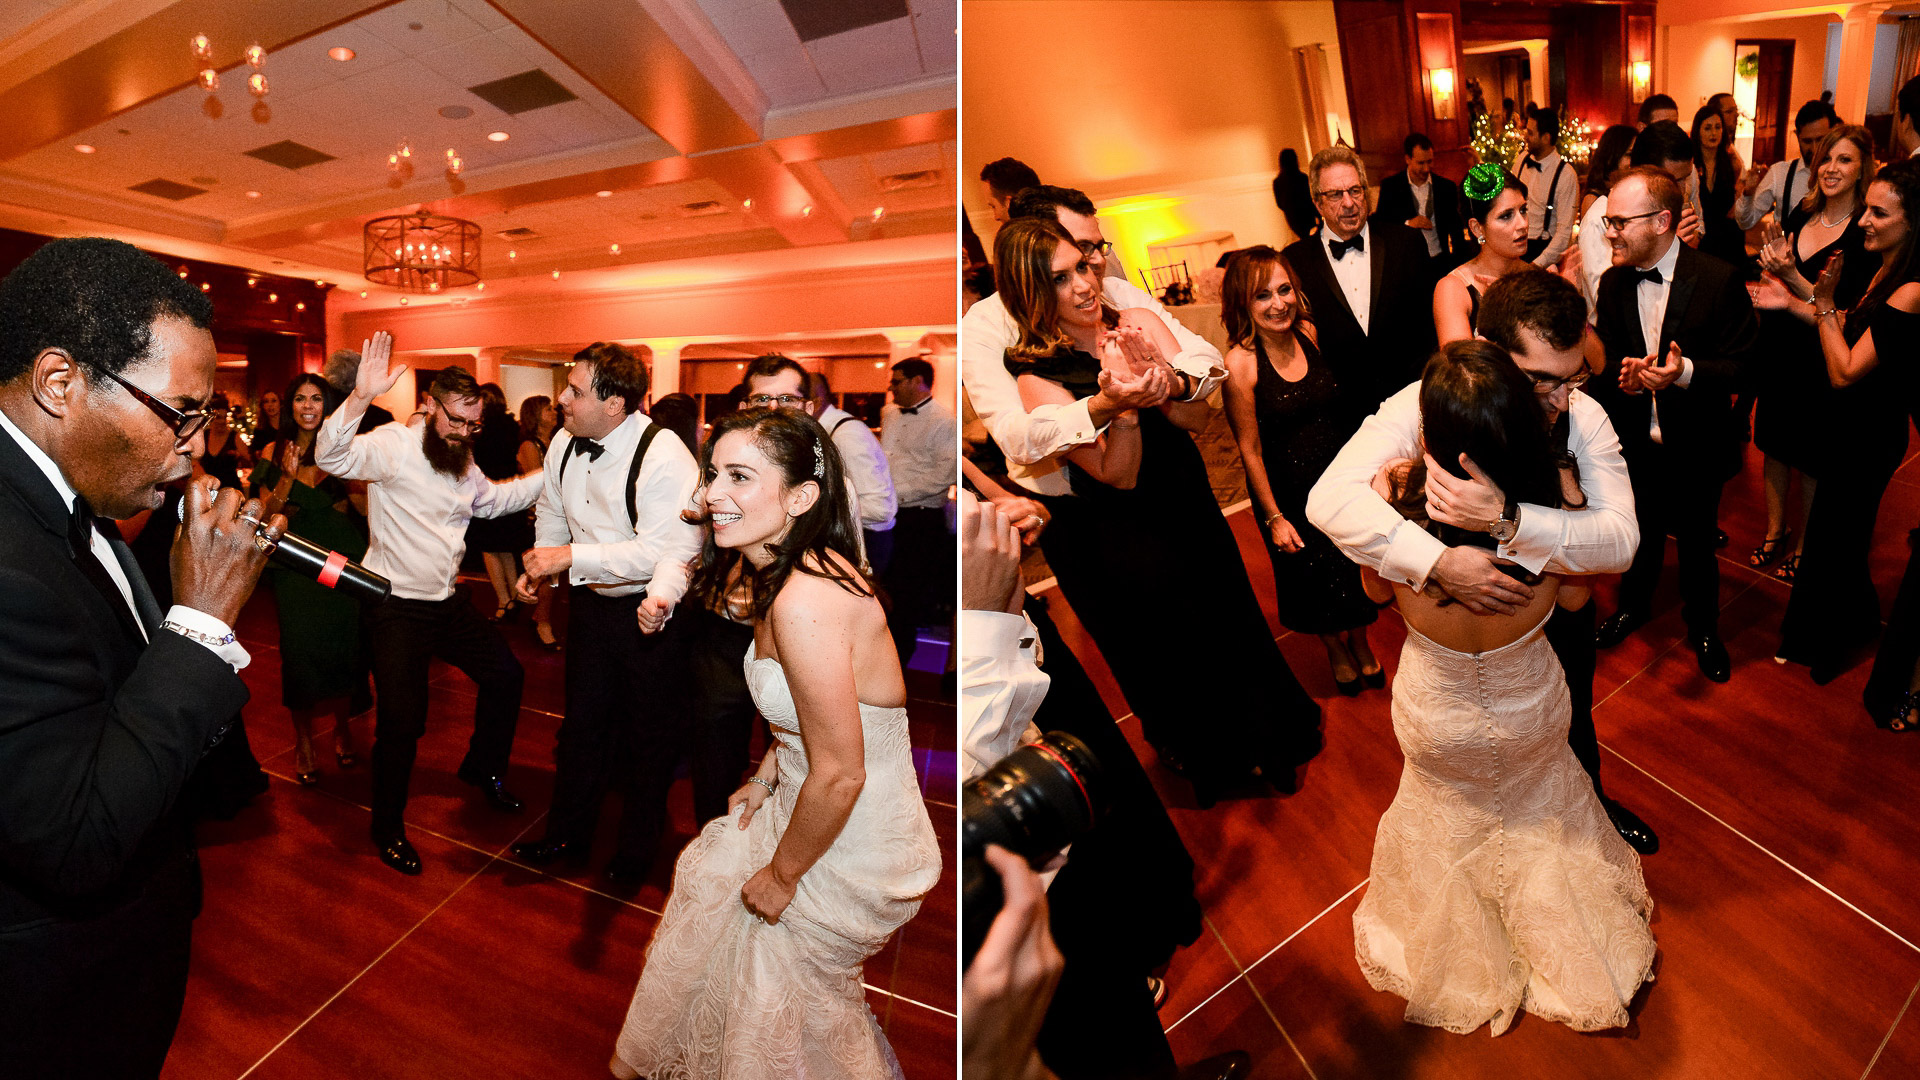 paramount country club wedding dancing